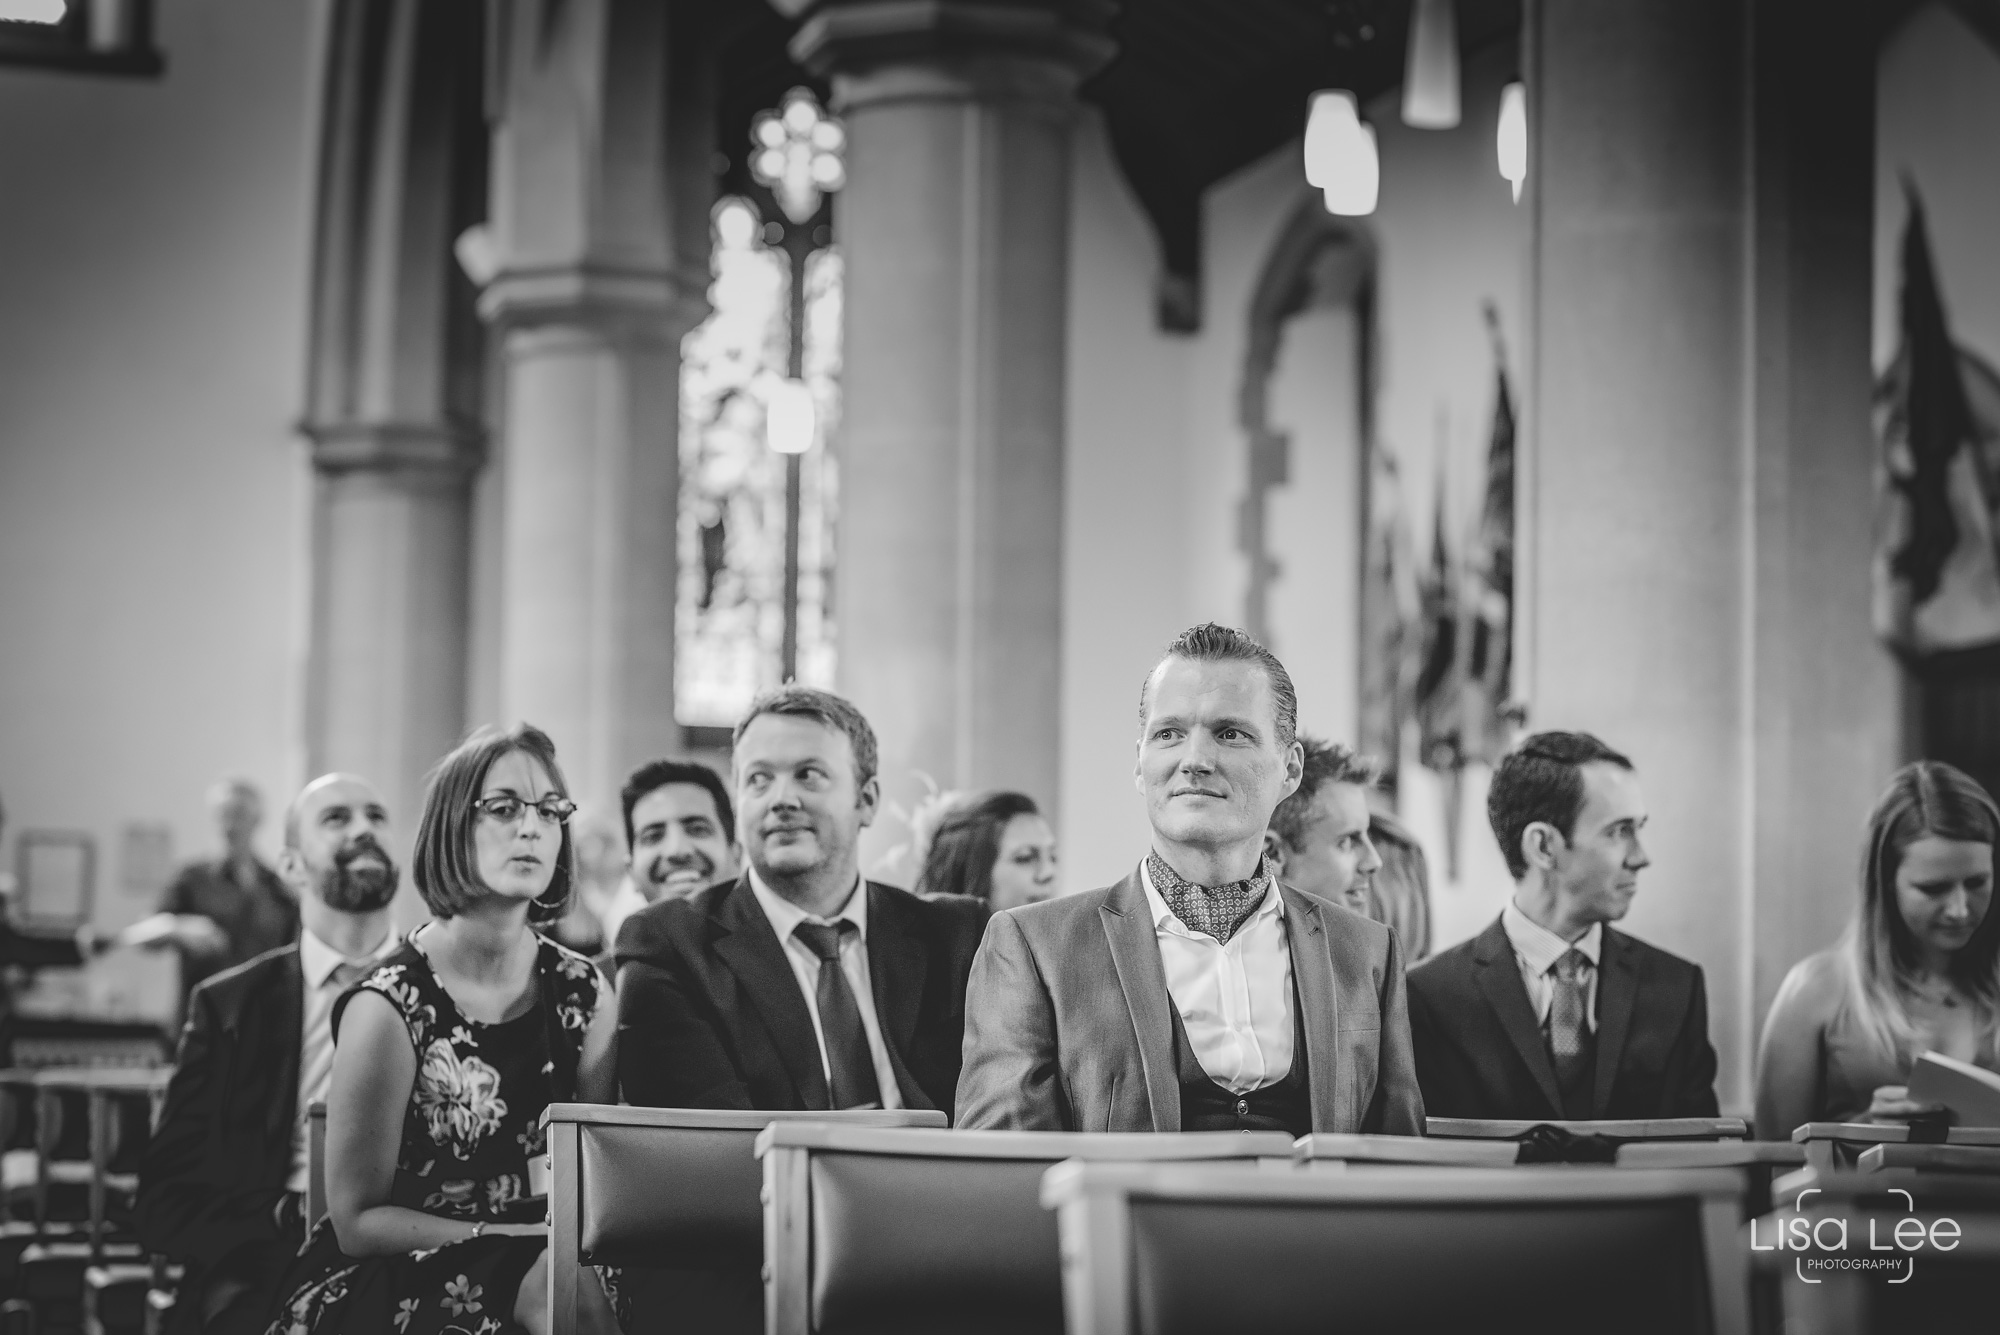 All-Saints-Church-Lisa-Lee-Documentary-Wedding-Photography-21.jpg